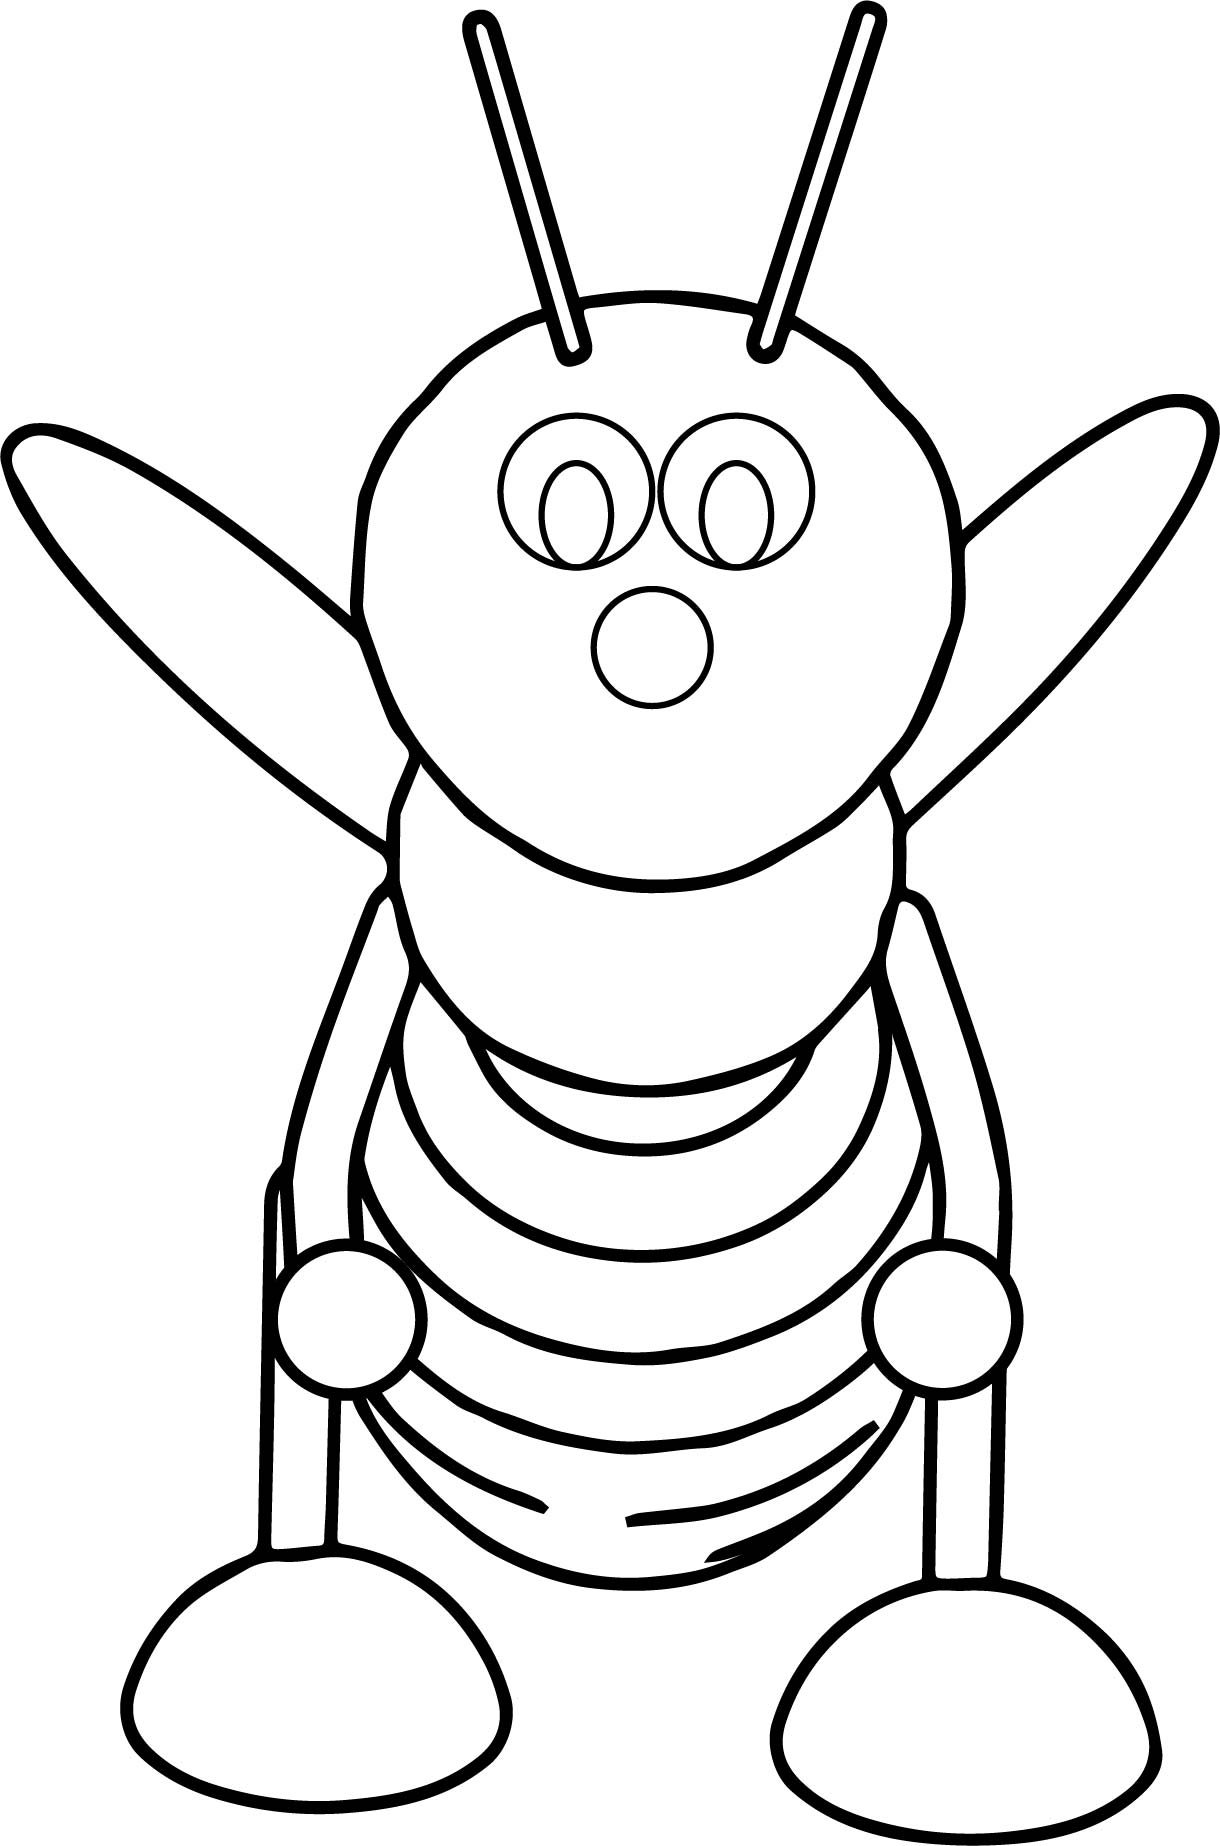 Bee Front View Coloring Page